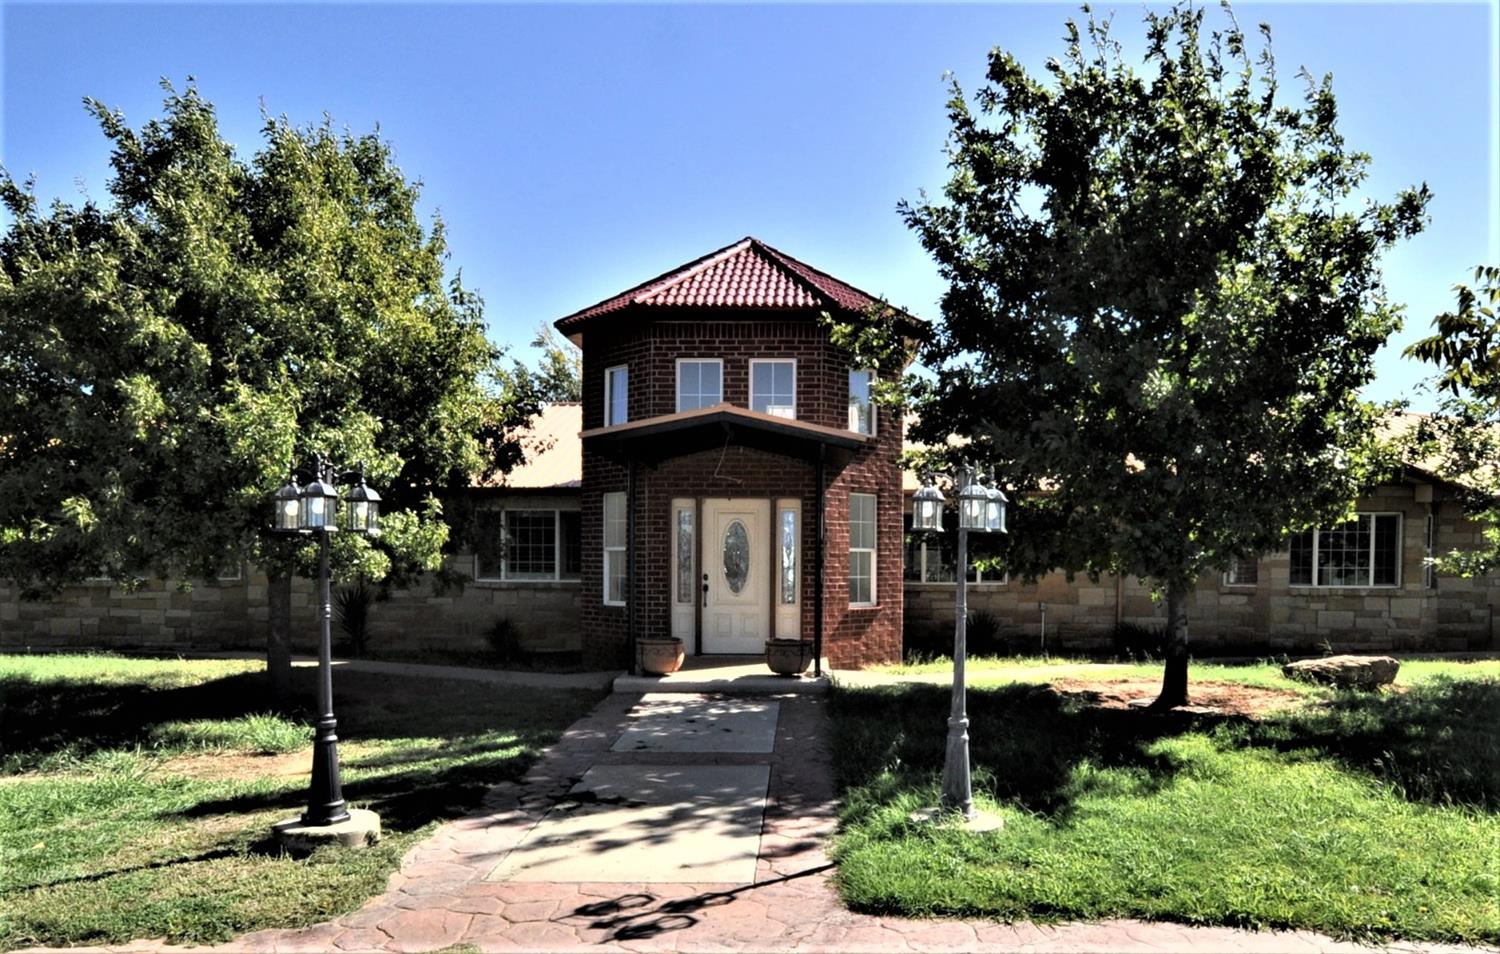 Beautiful 4 bedroom, 4 1/2 bath home in Levelland on 11.9 acres of land. This could be great horse property or great for a home based business or both. Property is all fenced for animals. Currently there are no restrictions, buyer could create restrictions if desired. Home has many great features, large bedrooms and bathrooms, huge kitchen with 2 pantries, huge laundry room with hookups for 2 washers and 2 dryers, half bath in laundry room, master bathroom has large walk-in shower, his and her sinks. Huge basement would be great for game-room/media room. In the backyard we have a nice covered porch, 3 car garage and large carport, pool that is currently not used, nice 2 story structure that could be a gameroom. There is also a gazebo and stone fireplace. There are a lot of different kinds of trees including about 200 pecan and 100 fruit trees and are on drip system. Concrete driveway goes all the way to 2 20x60 barns. Pond is currently not filled with water.  Sq footage is approximate.